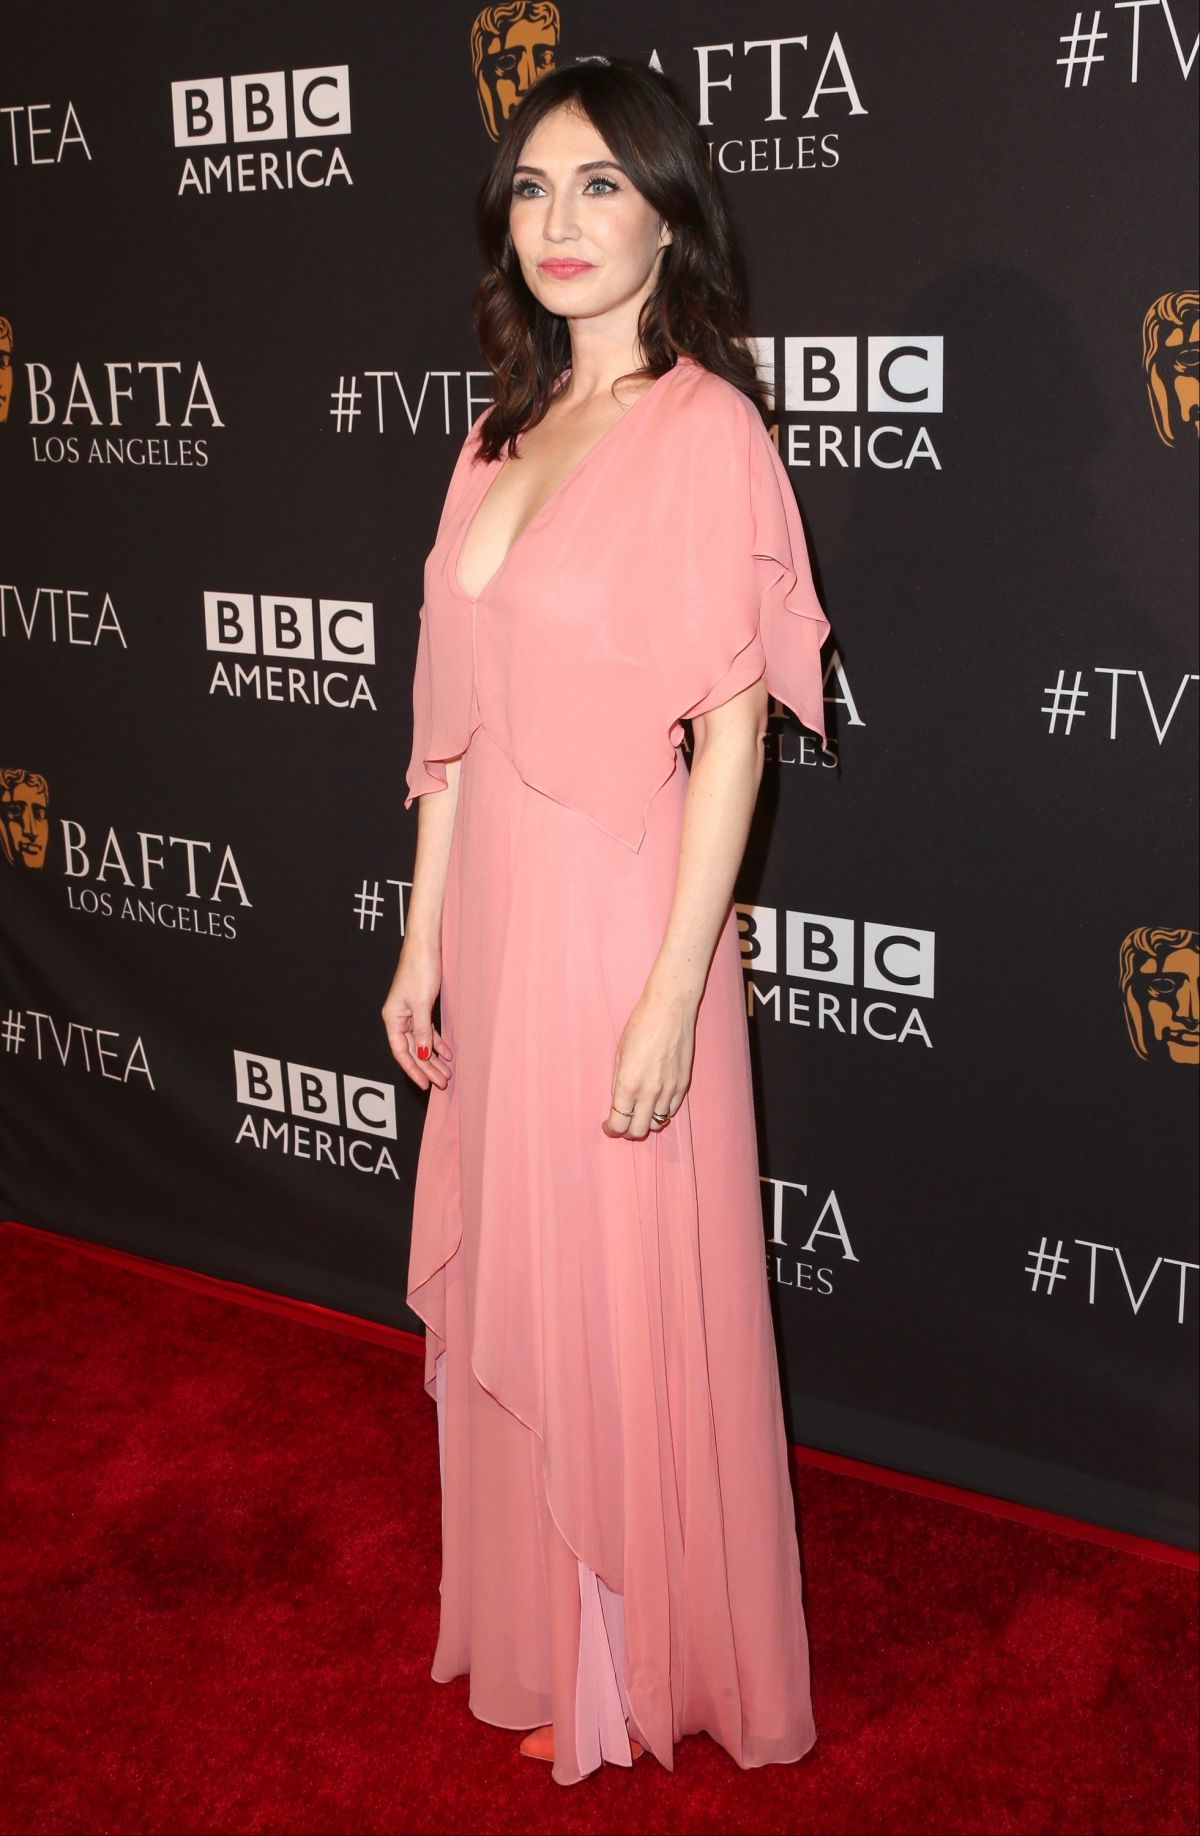 CARICE VAN HOUTEN at 2015 Bafta Los Angeles TV Tea in Beverly Hills 09/19/2015